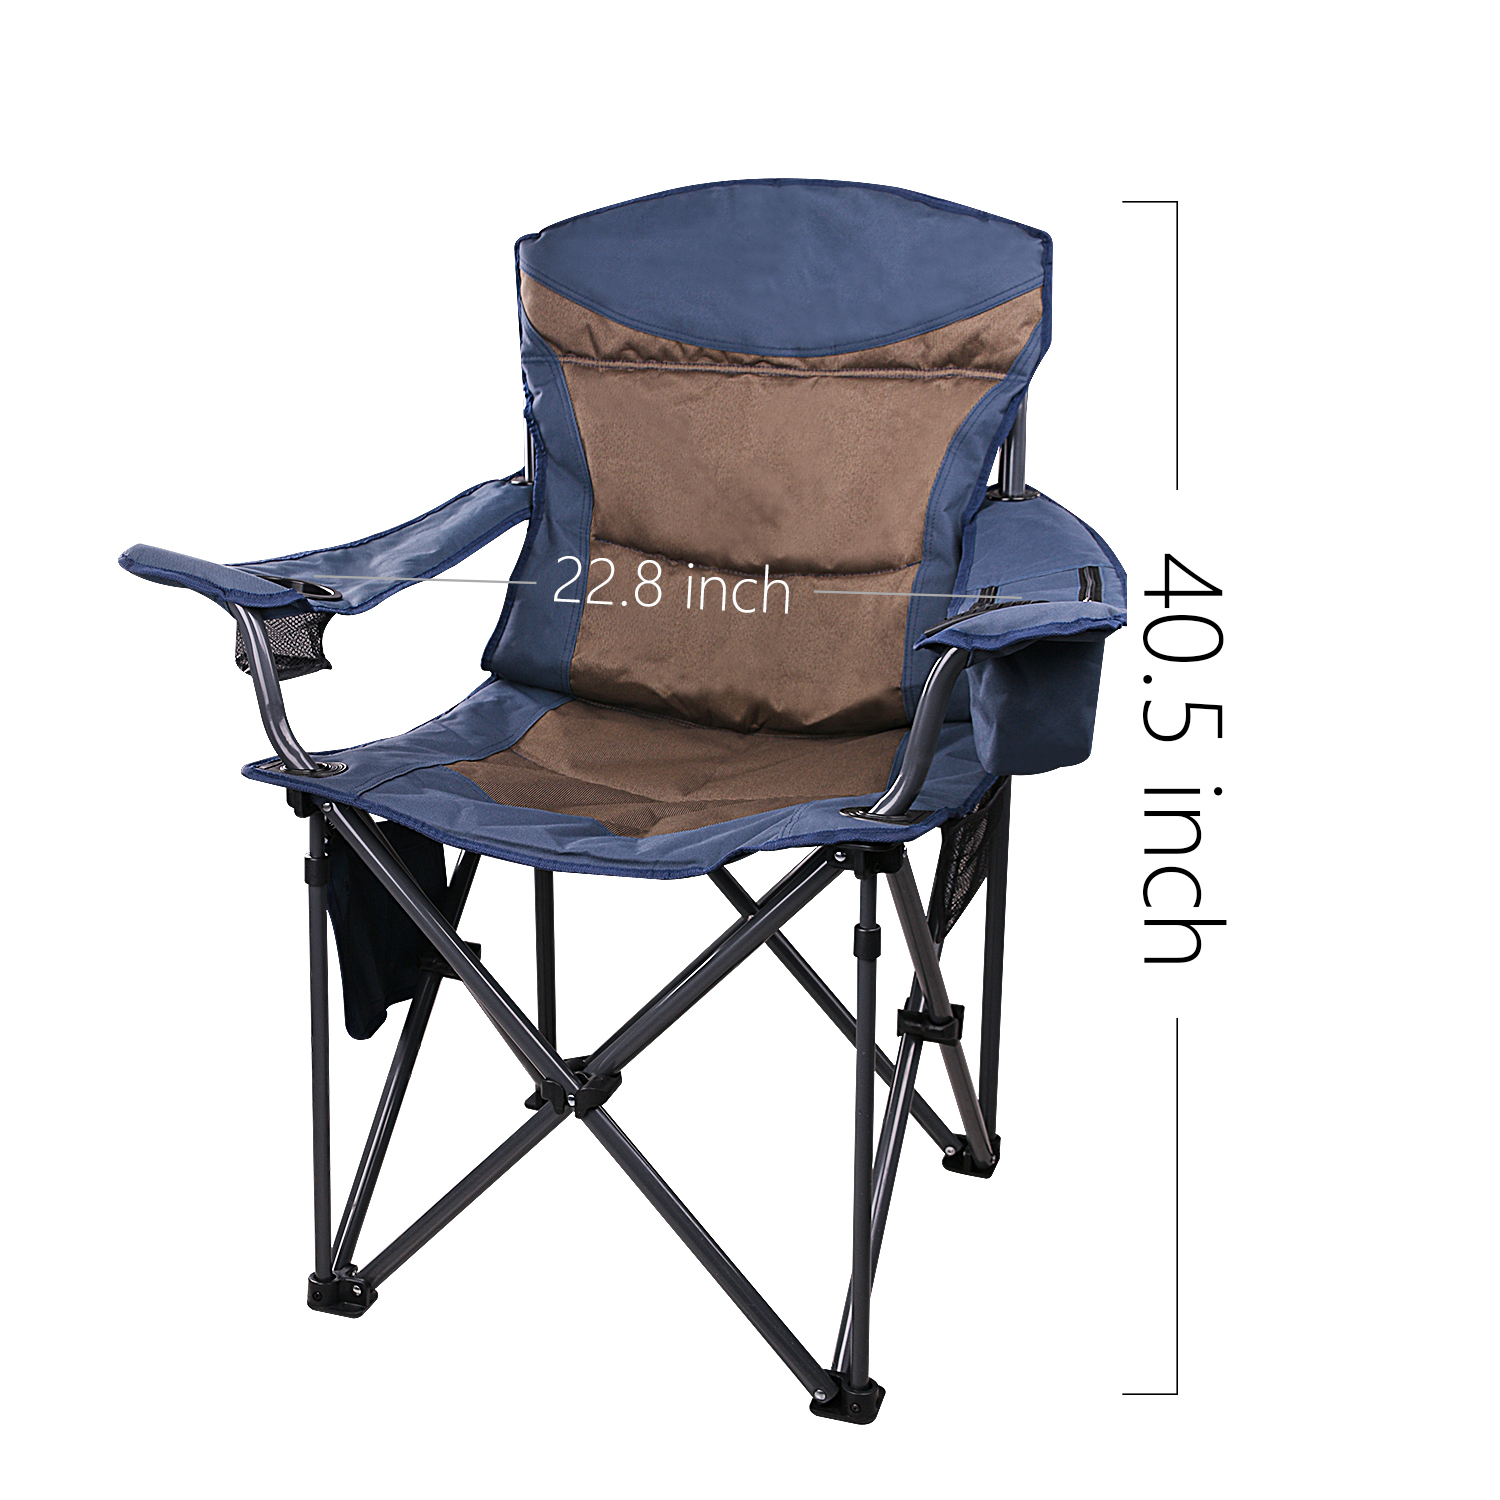 Admirable High Quality Deluxe Outdoor Folding Camping Chairs With Cooler Buy High Quality Folding Camping Chair Folding Camping Chair With Cooler Deluxe Machost Co Dining Chair Design Ideas Machostcouk